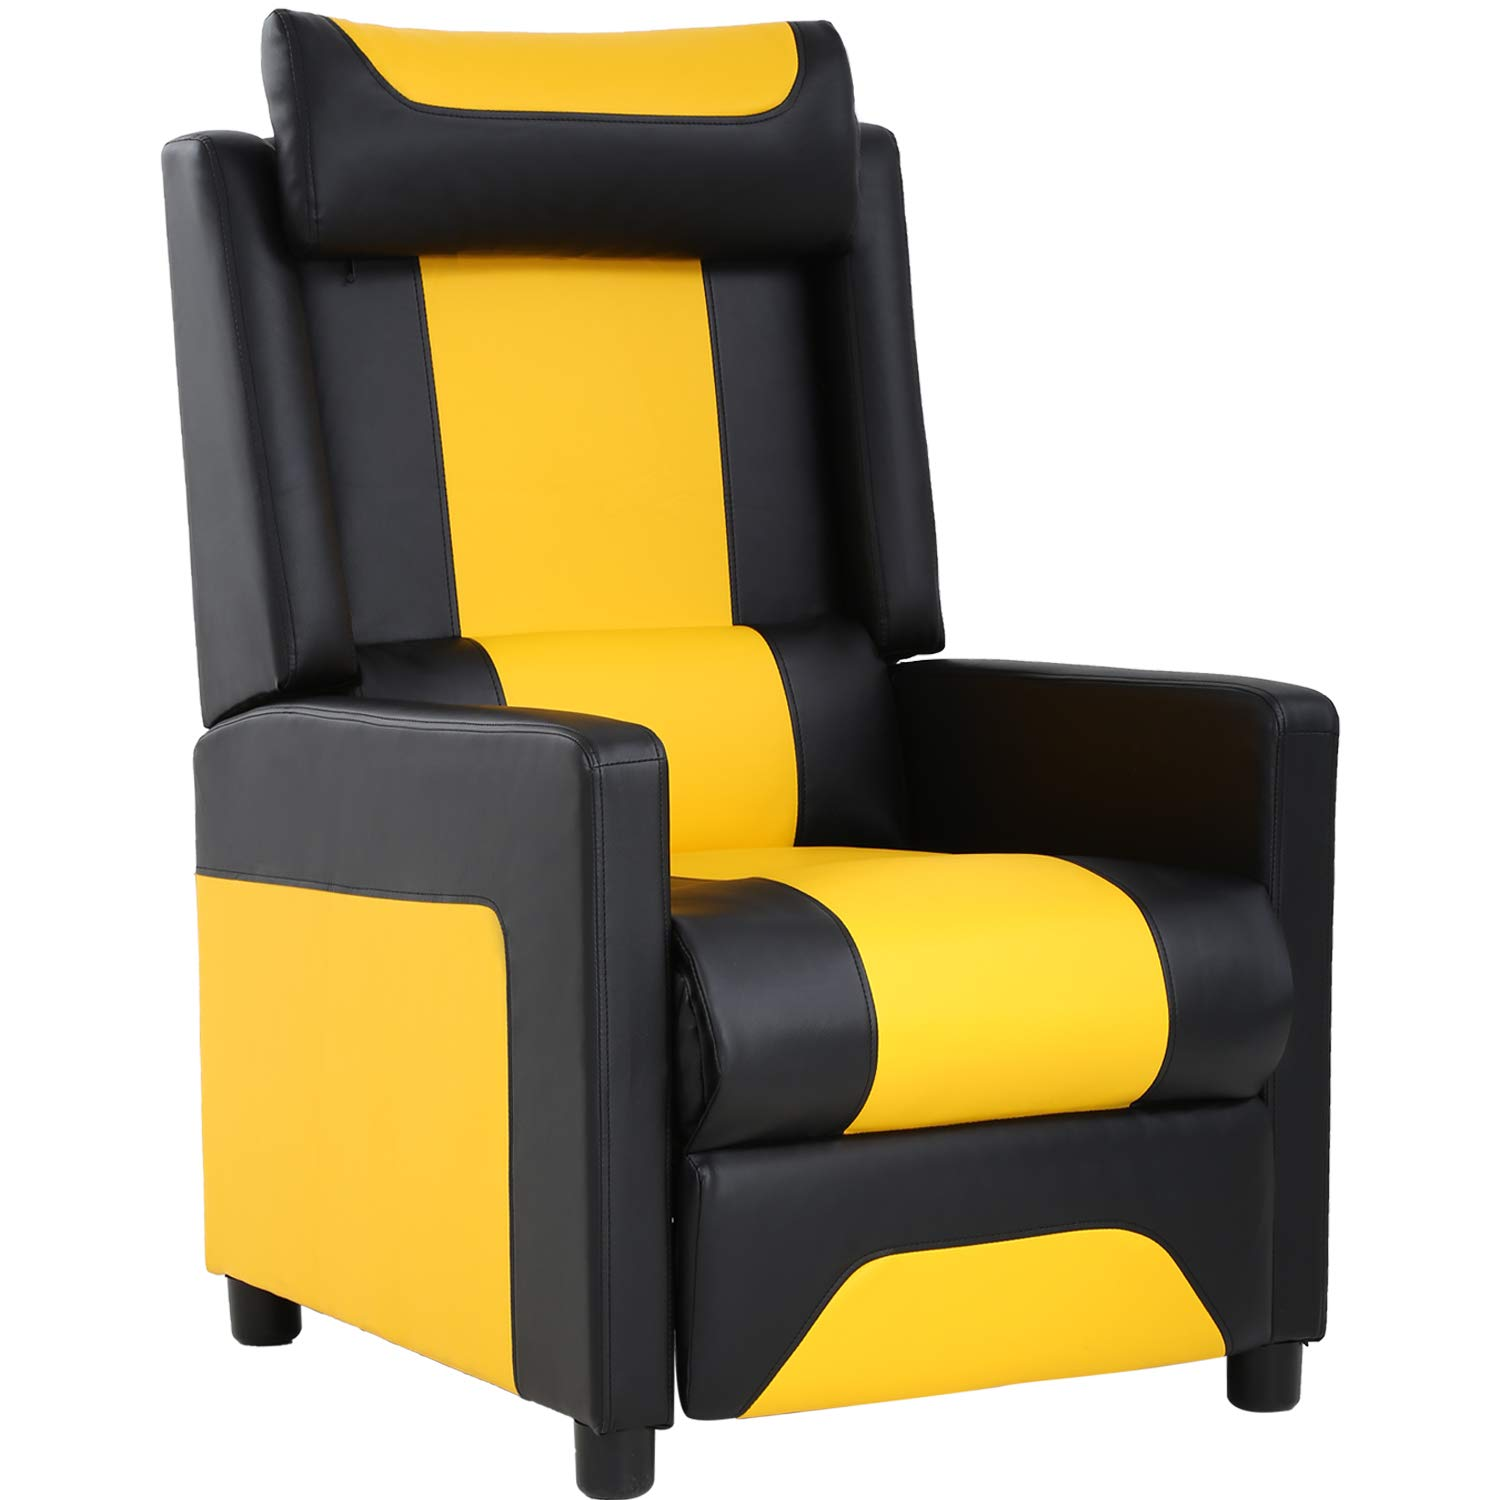 Gaming Chair Recliner Chair Reclining Sofa Single Home Theater Seating Gaming Sofa PU Leather for Living Room Furniture by BMS